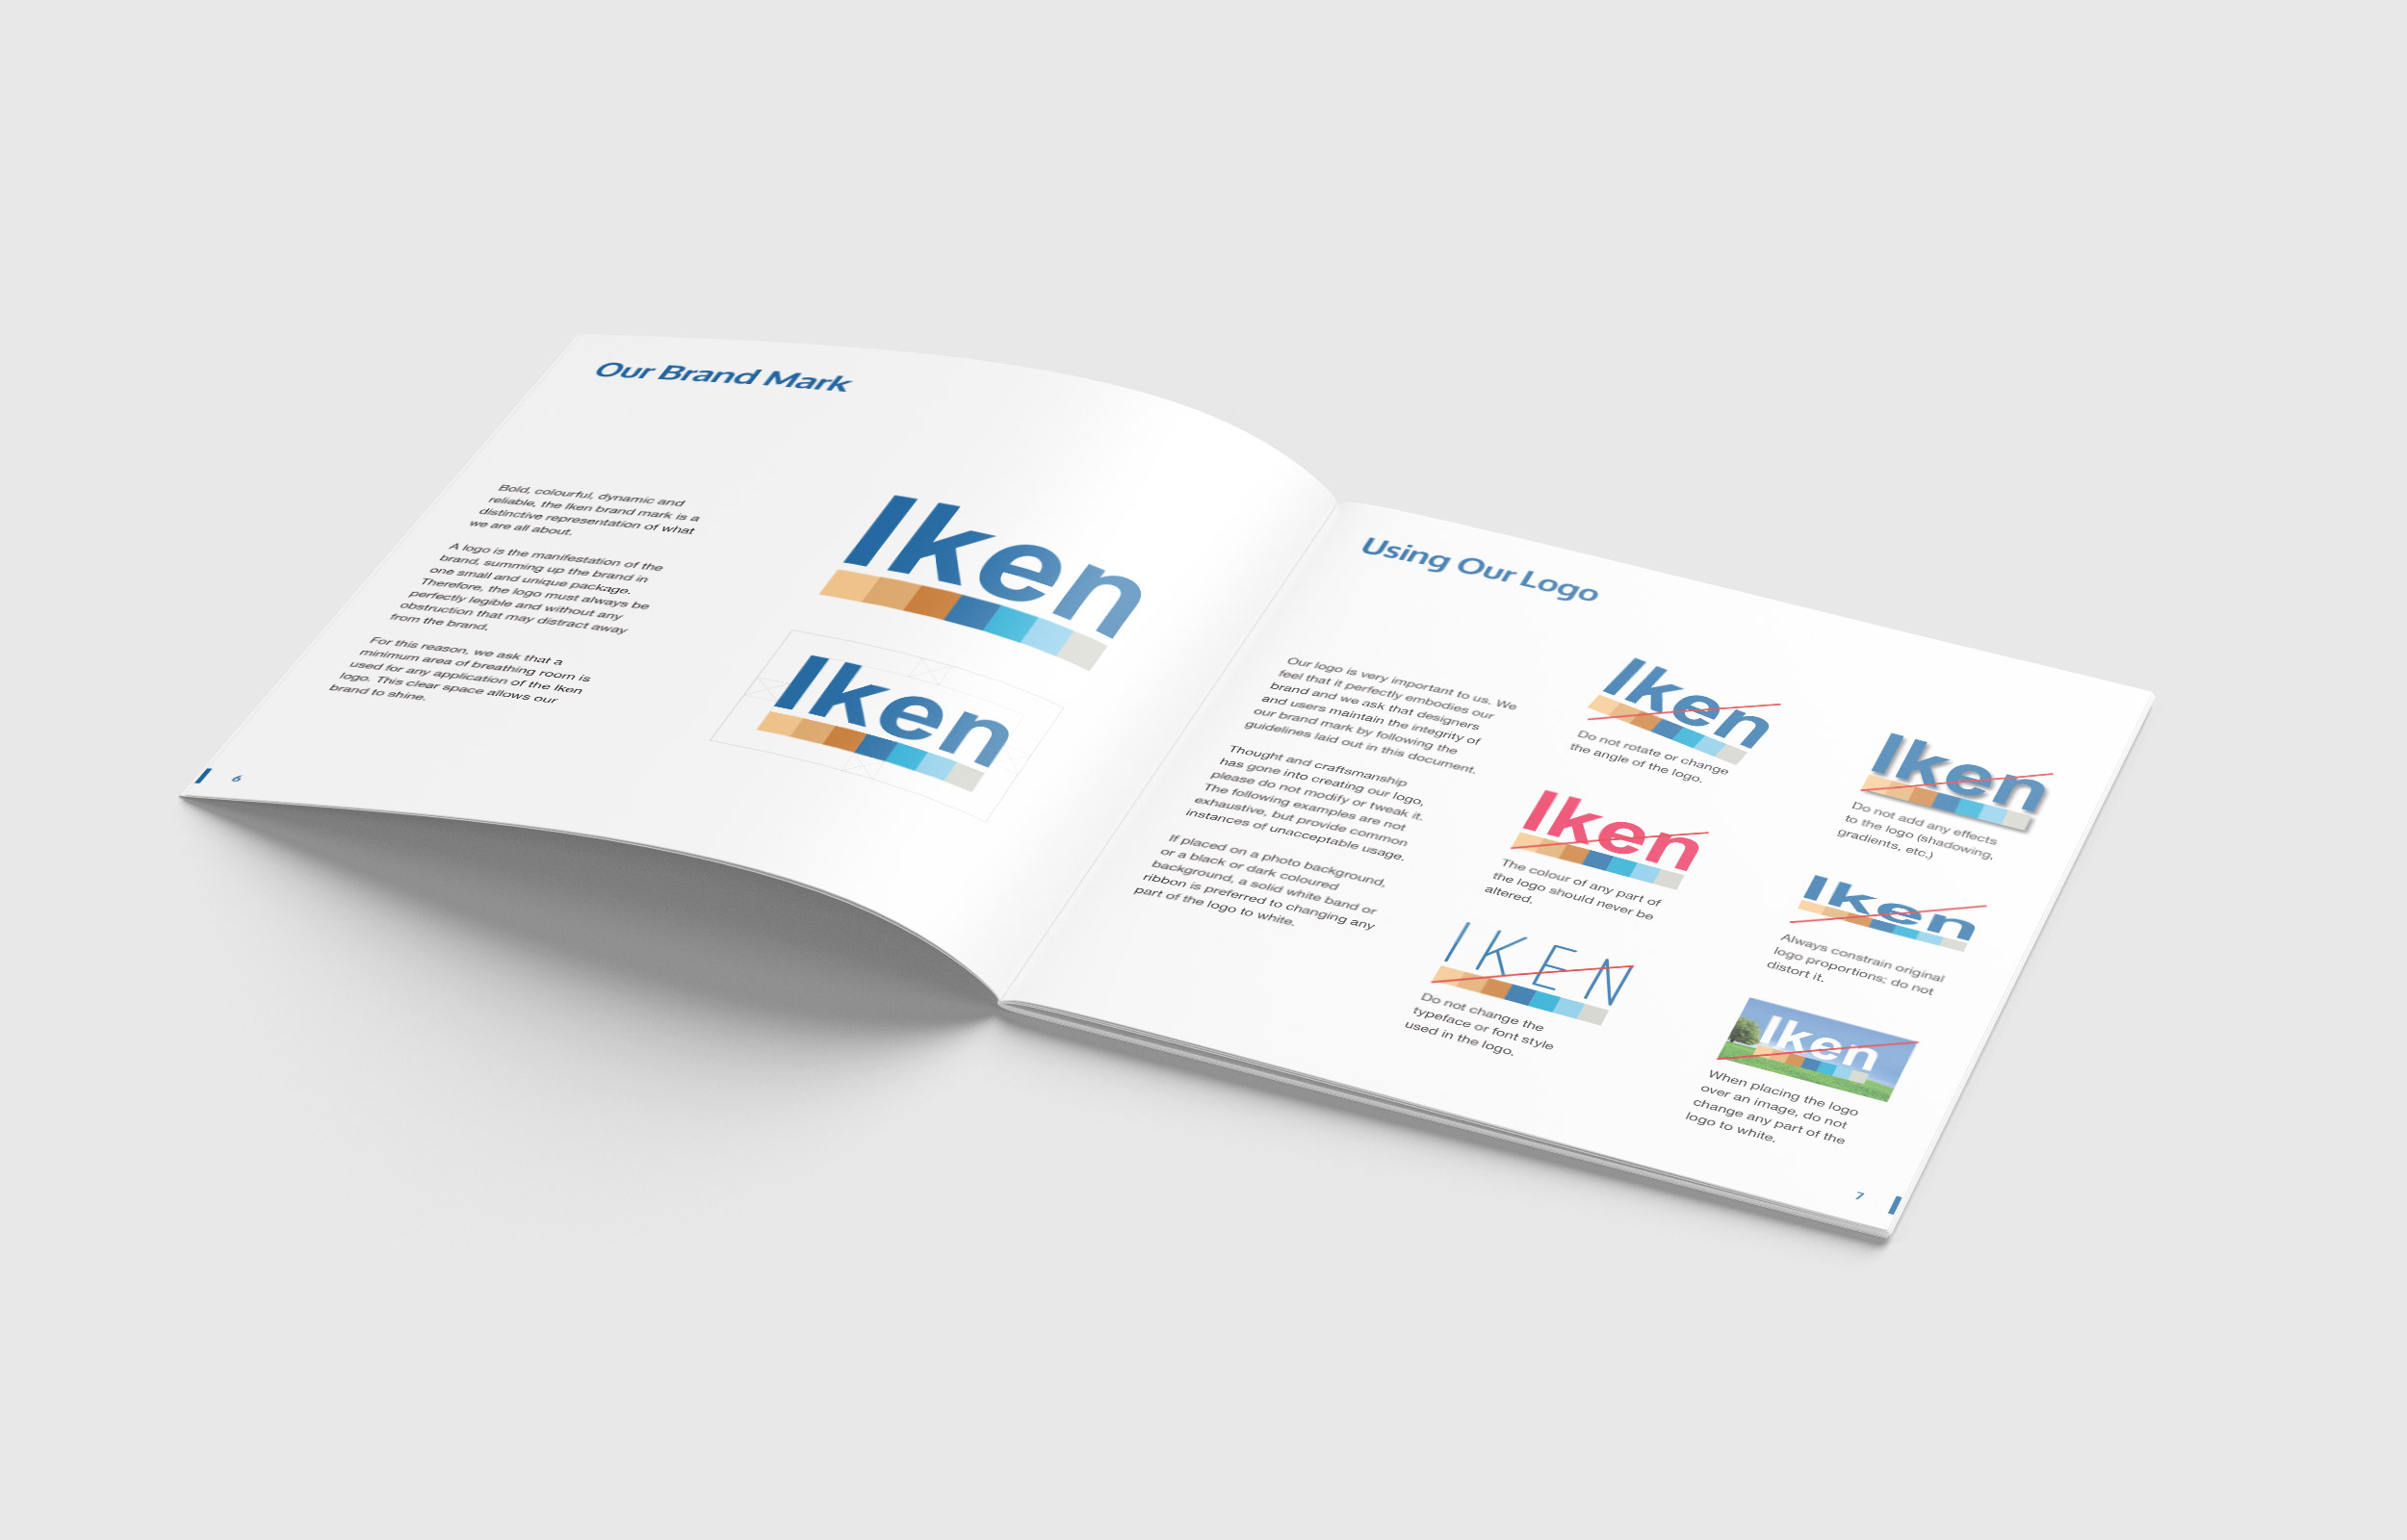 Logo usage in the Iken Business brand identity handbook